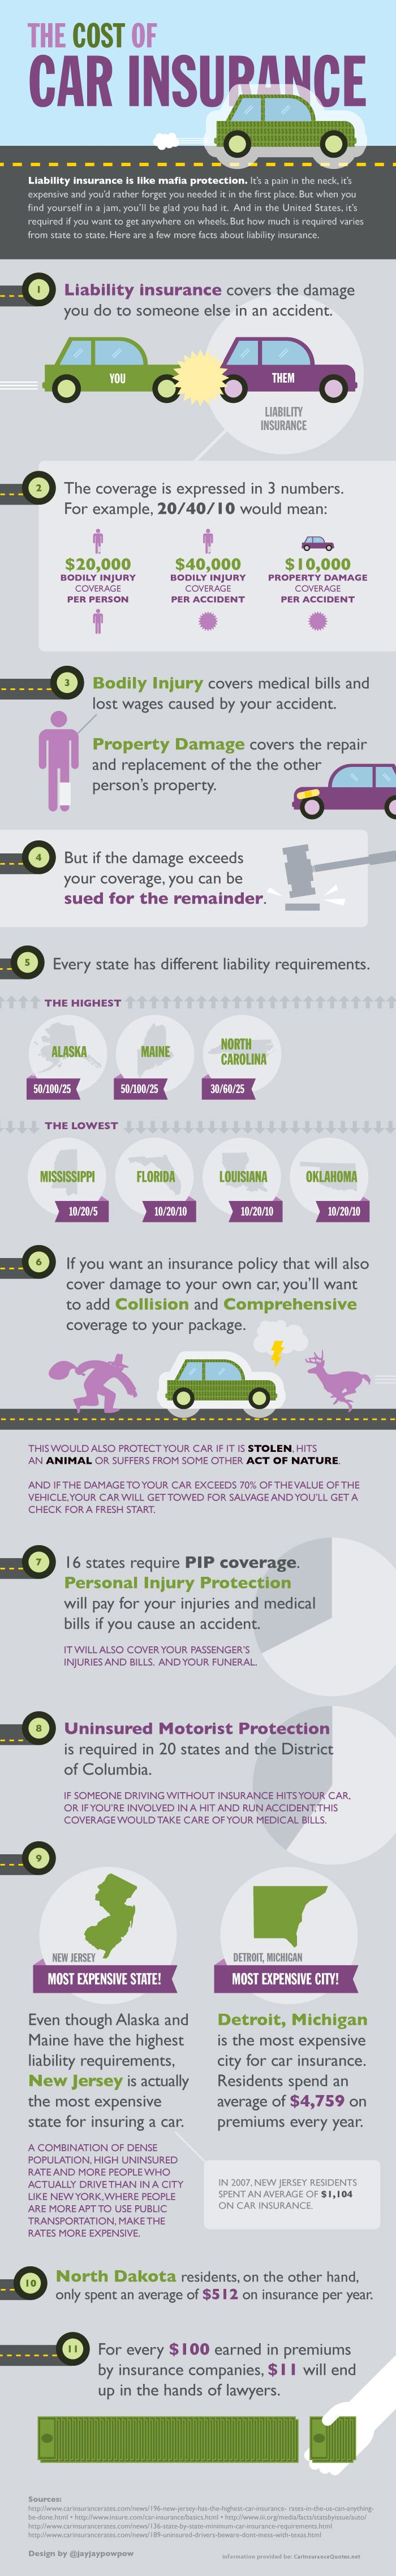 Low cost car insurance #infographic